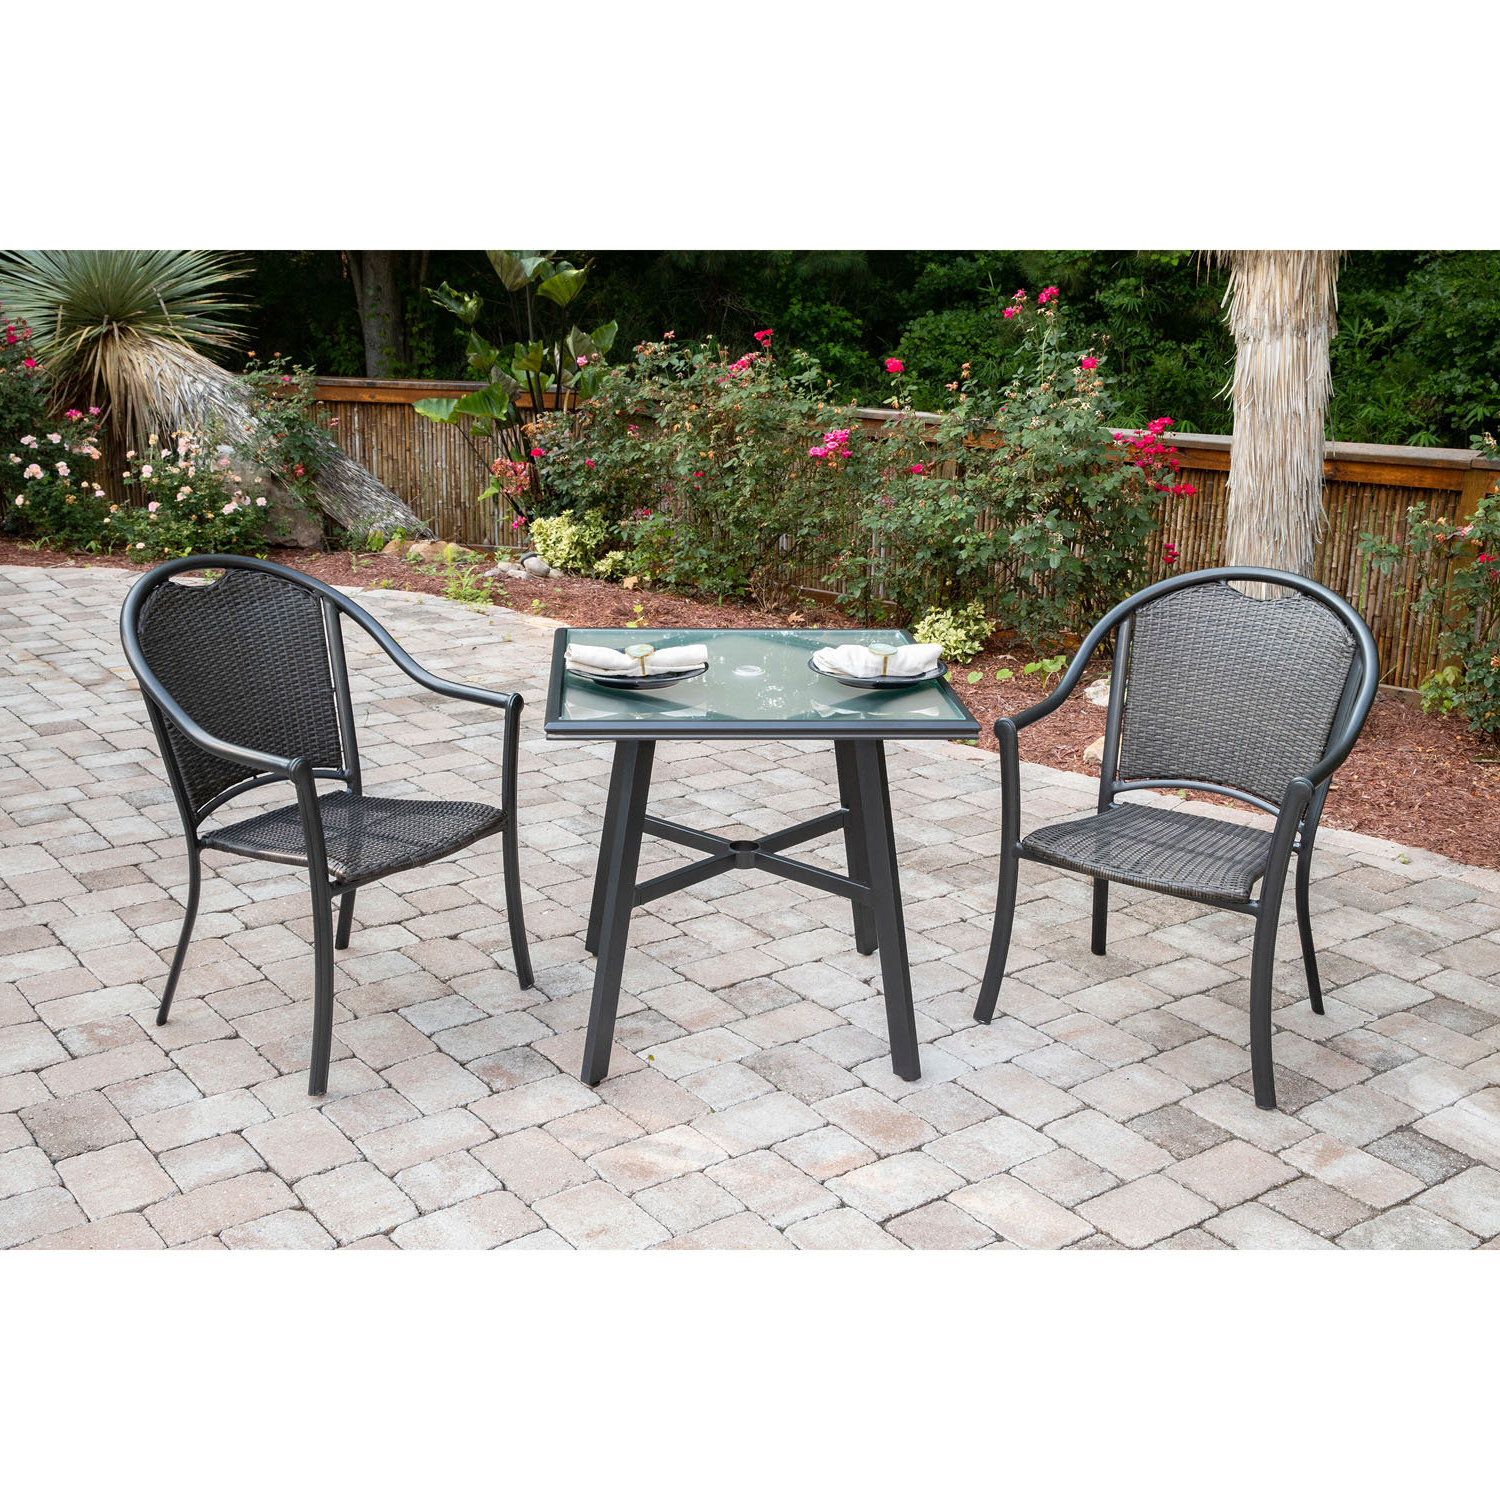 Newest Bearden 3 Piece Dining Sets Regarding Charlton Home Bearden 3 Piece Commercial Grade Patio Set With (View 3 of 25)